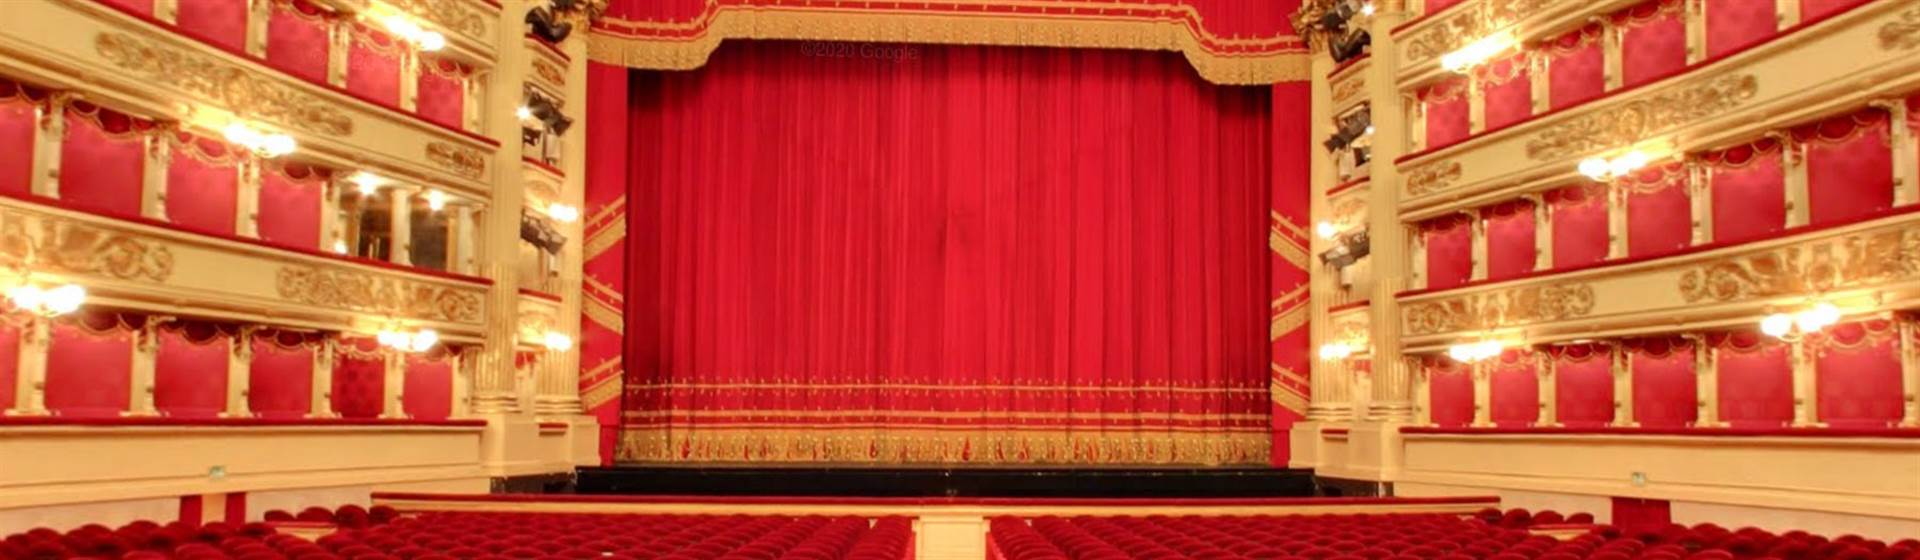 Theatter Stage 2